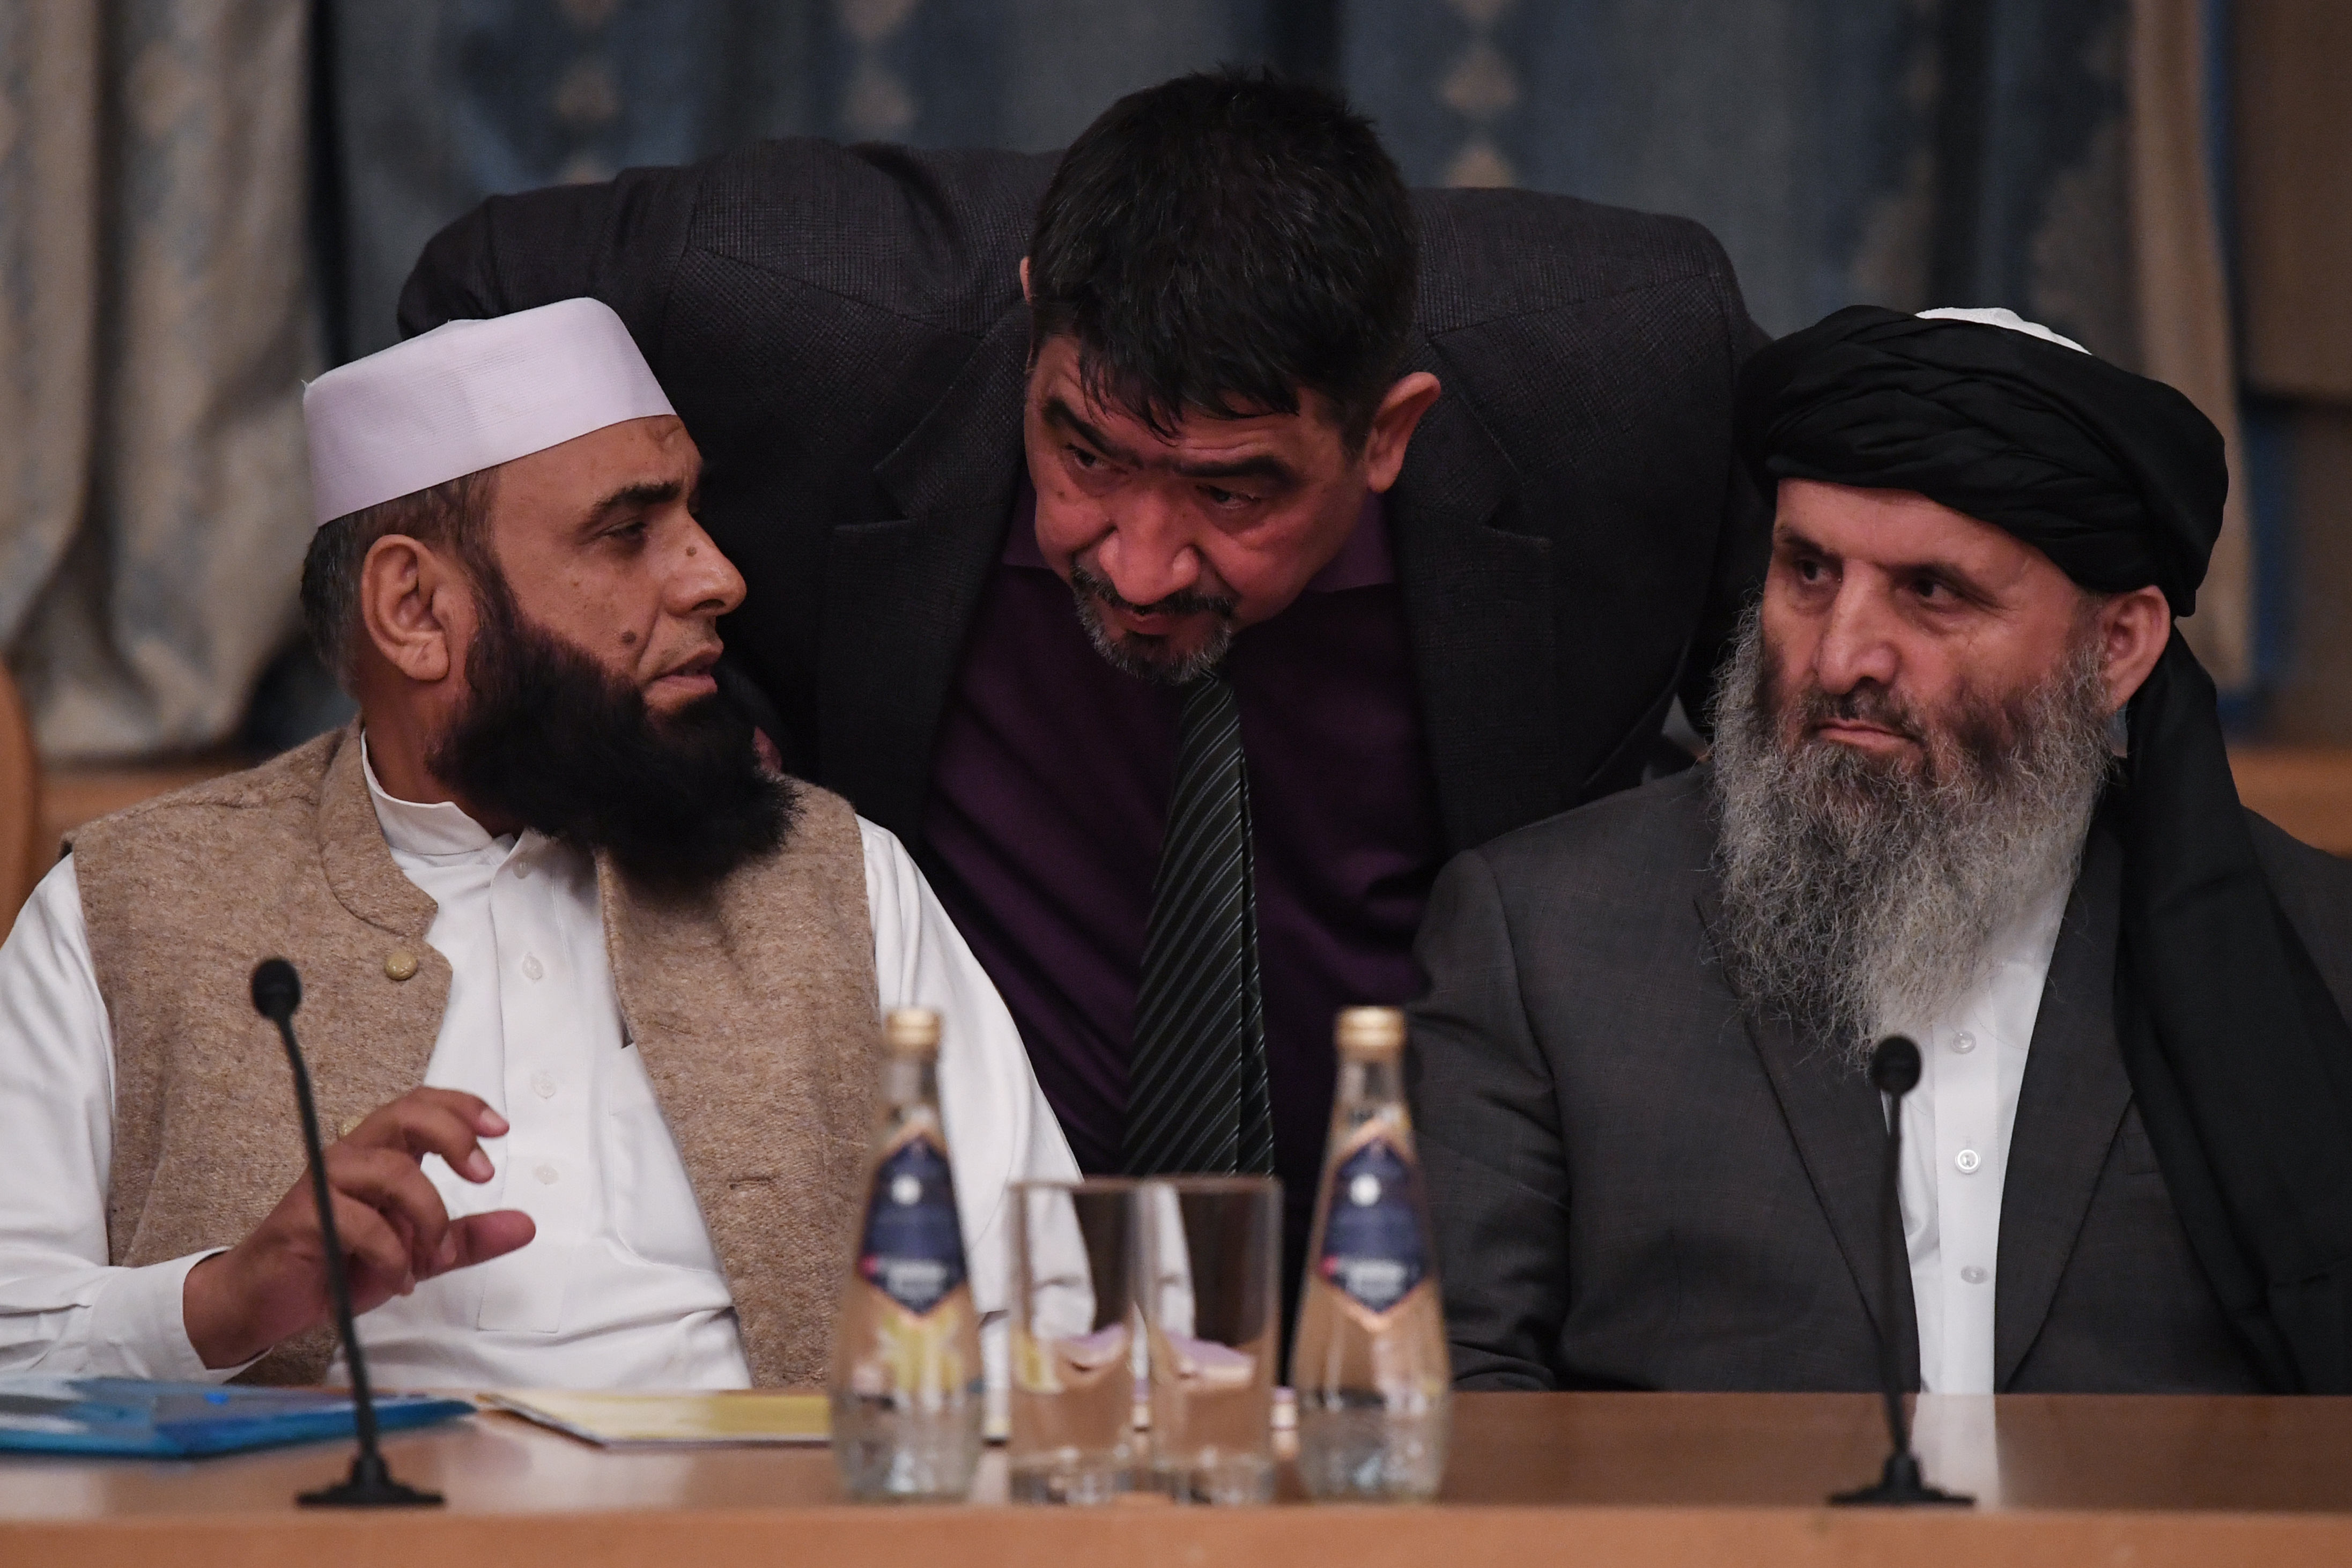 Iran's dealings with Taliban constitute effort to topple Afghan government